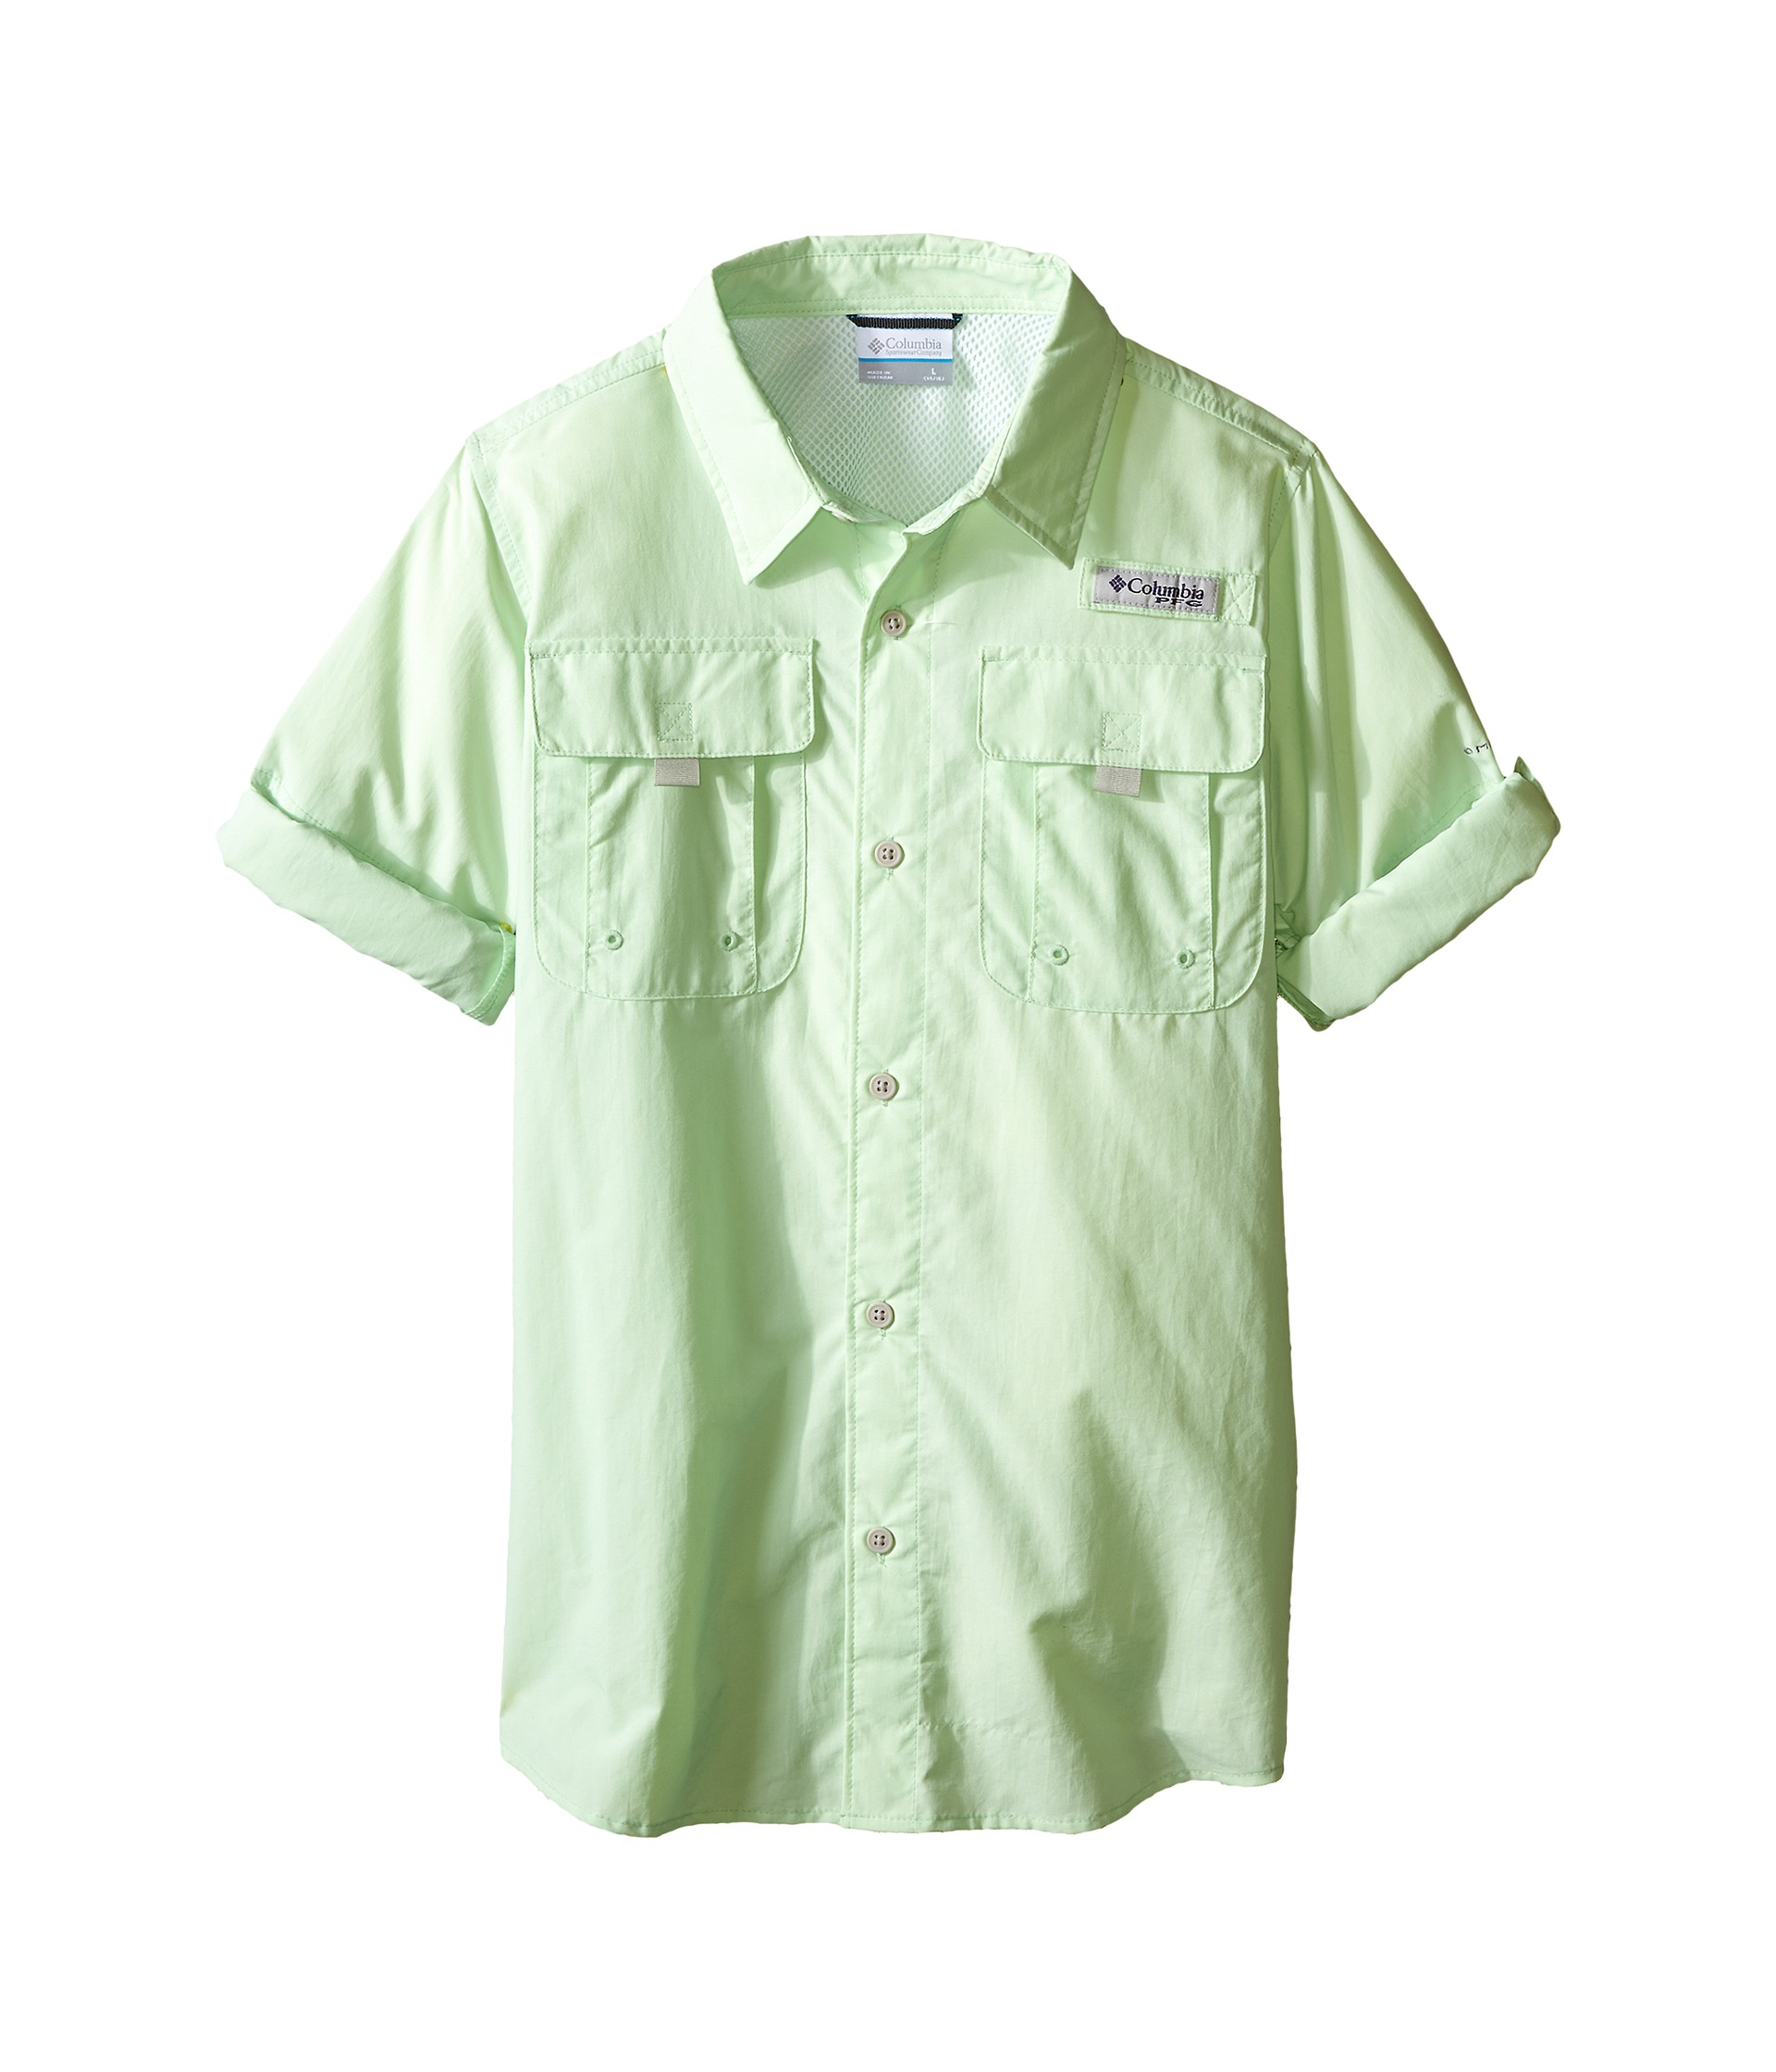 Columbia kids bahama l s shirt little kids big kids at for Baby fishing shirts columbia